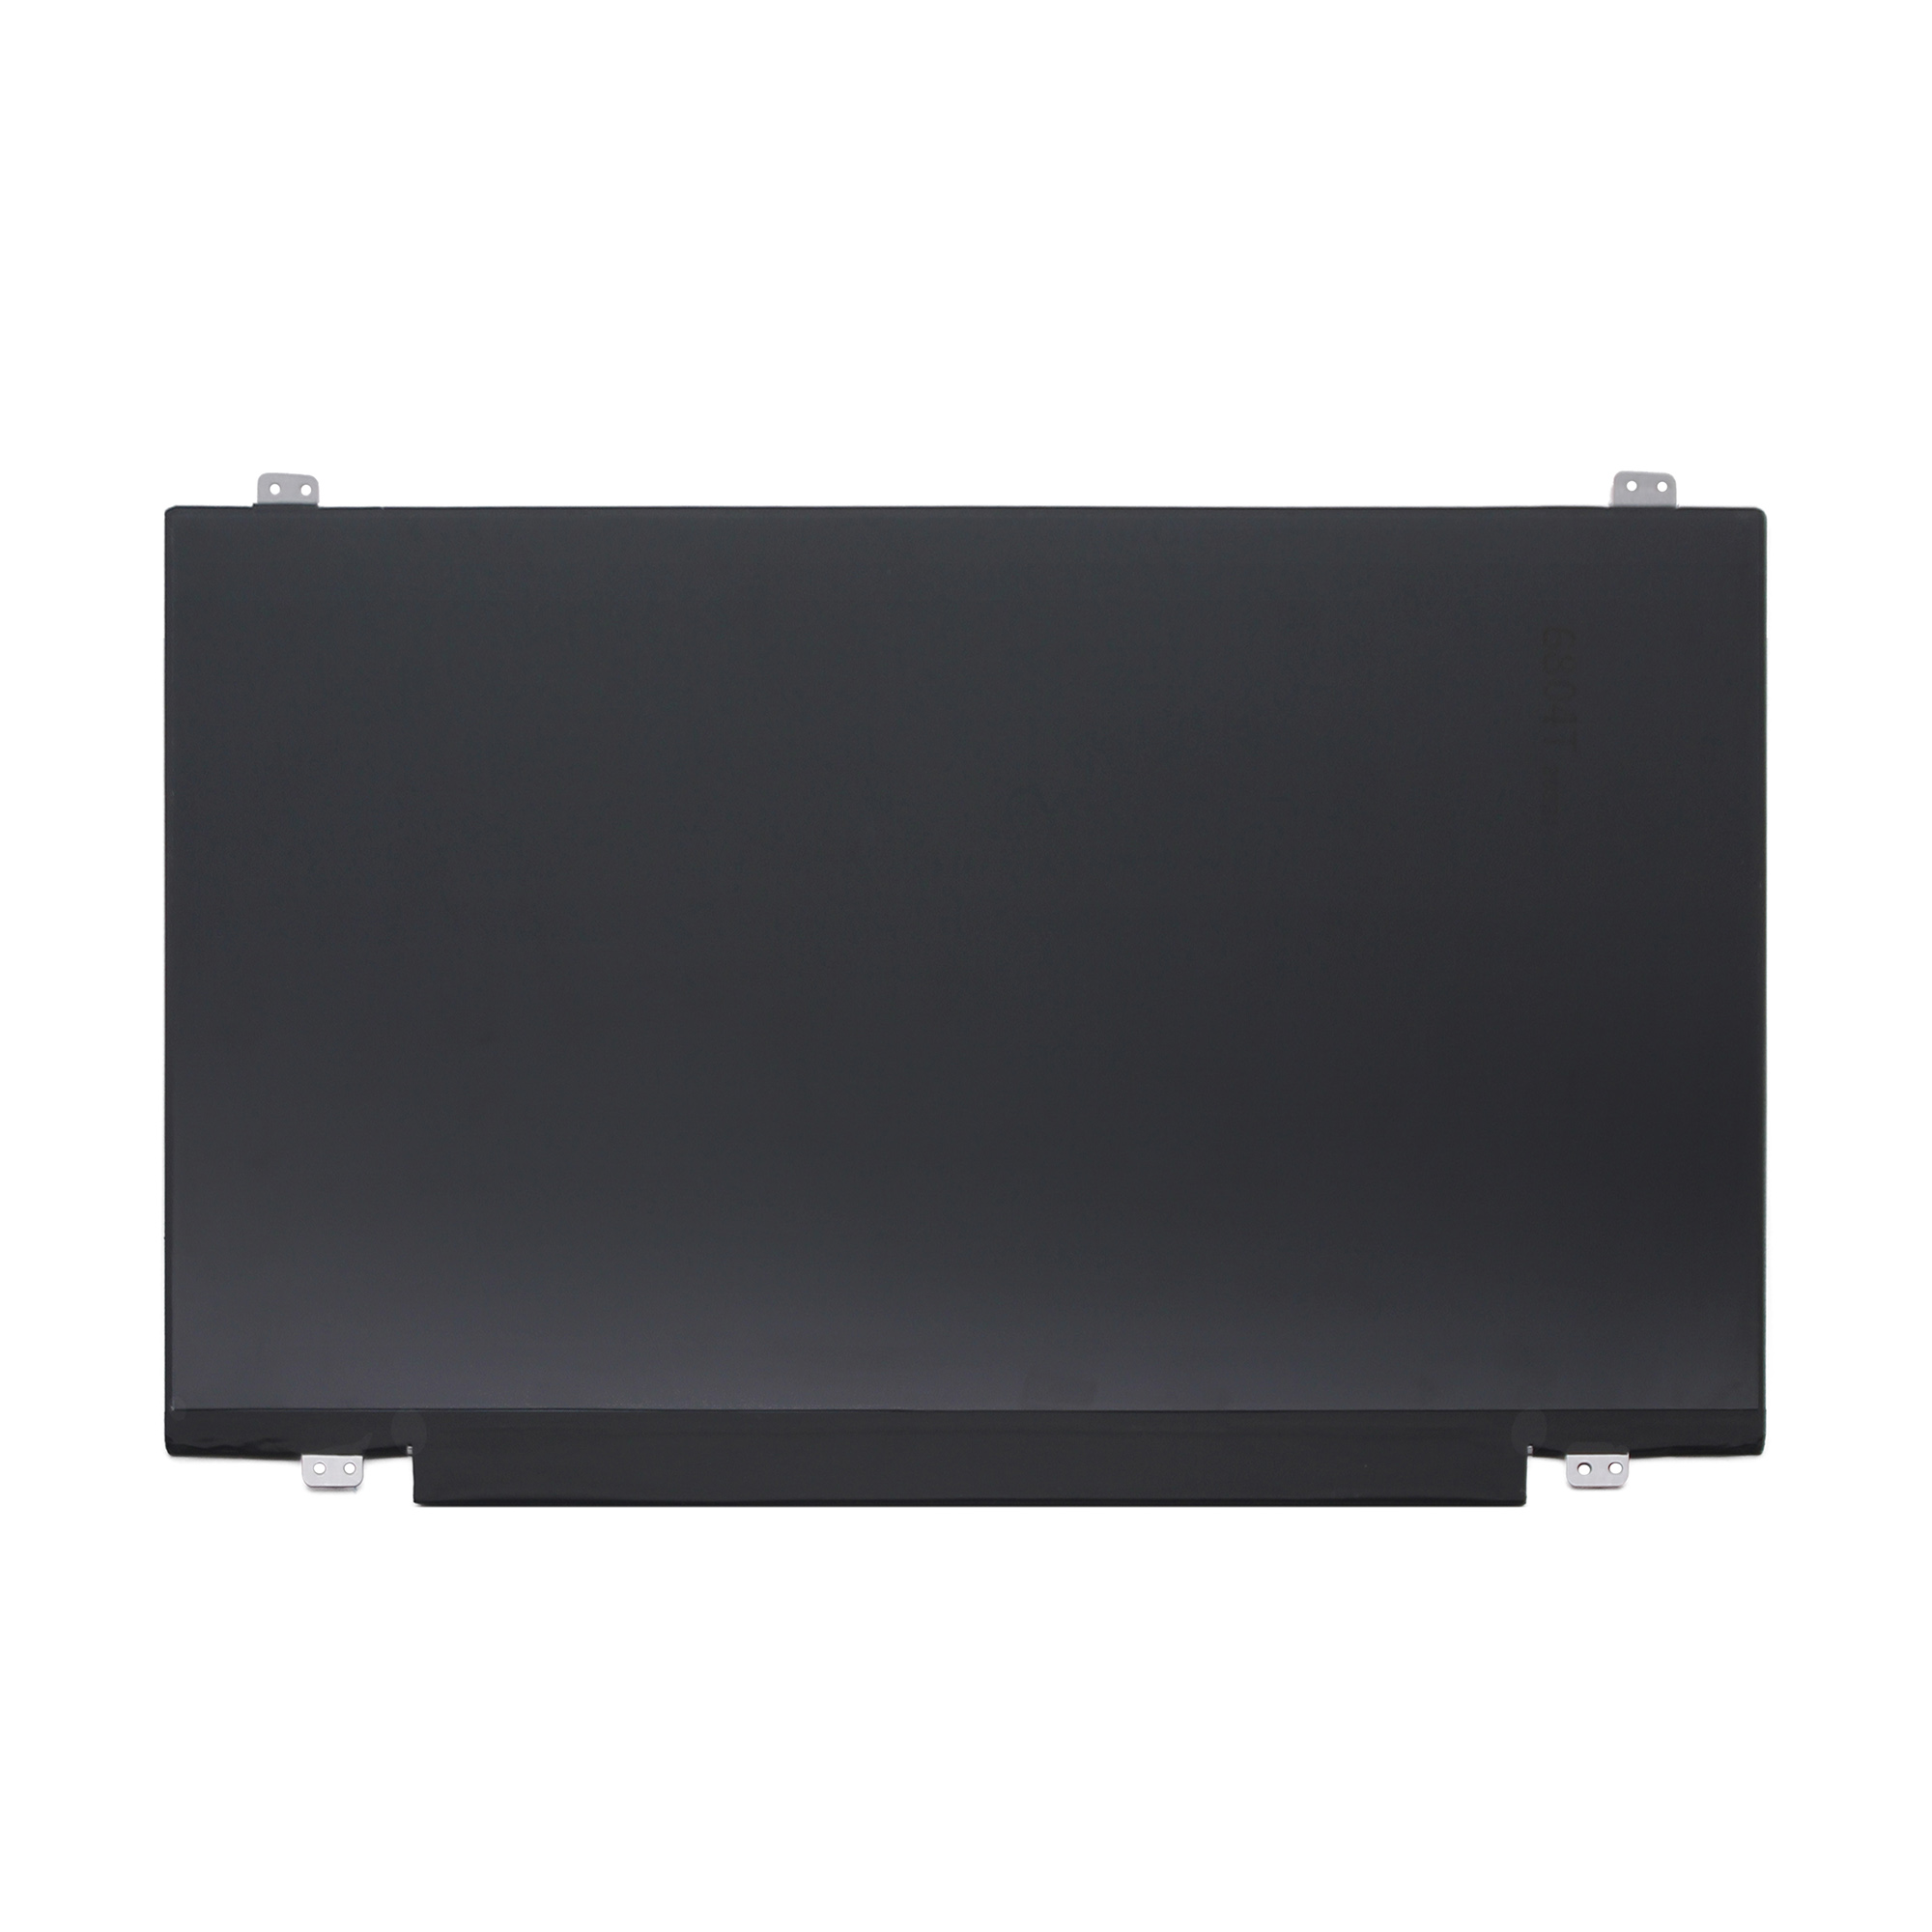 14'' LED LCD Screen Display Panel Matrix Model N140HCE-EN1 Rev C2 Rev C1 Rev C4 Rev B3 IPS 72%NTSC FHD 1920x1080 30 Pins